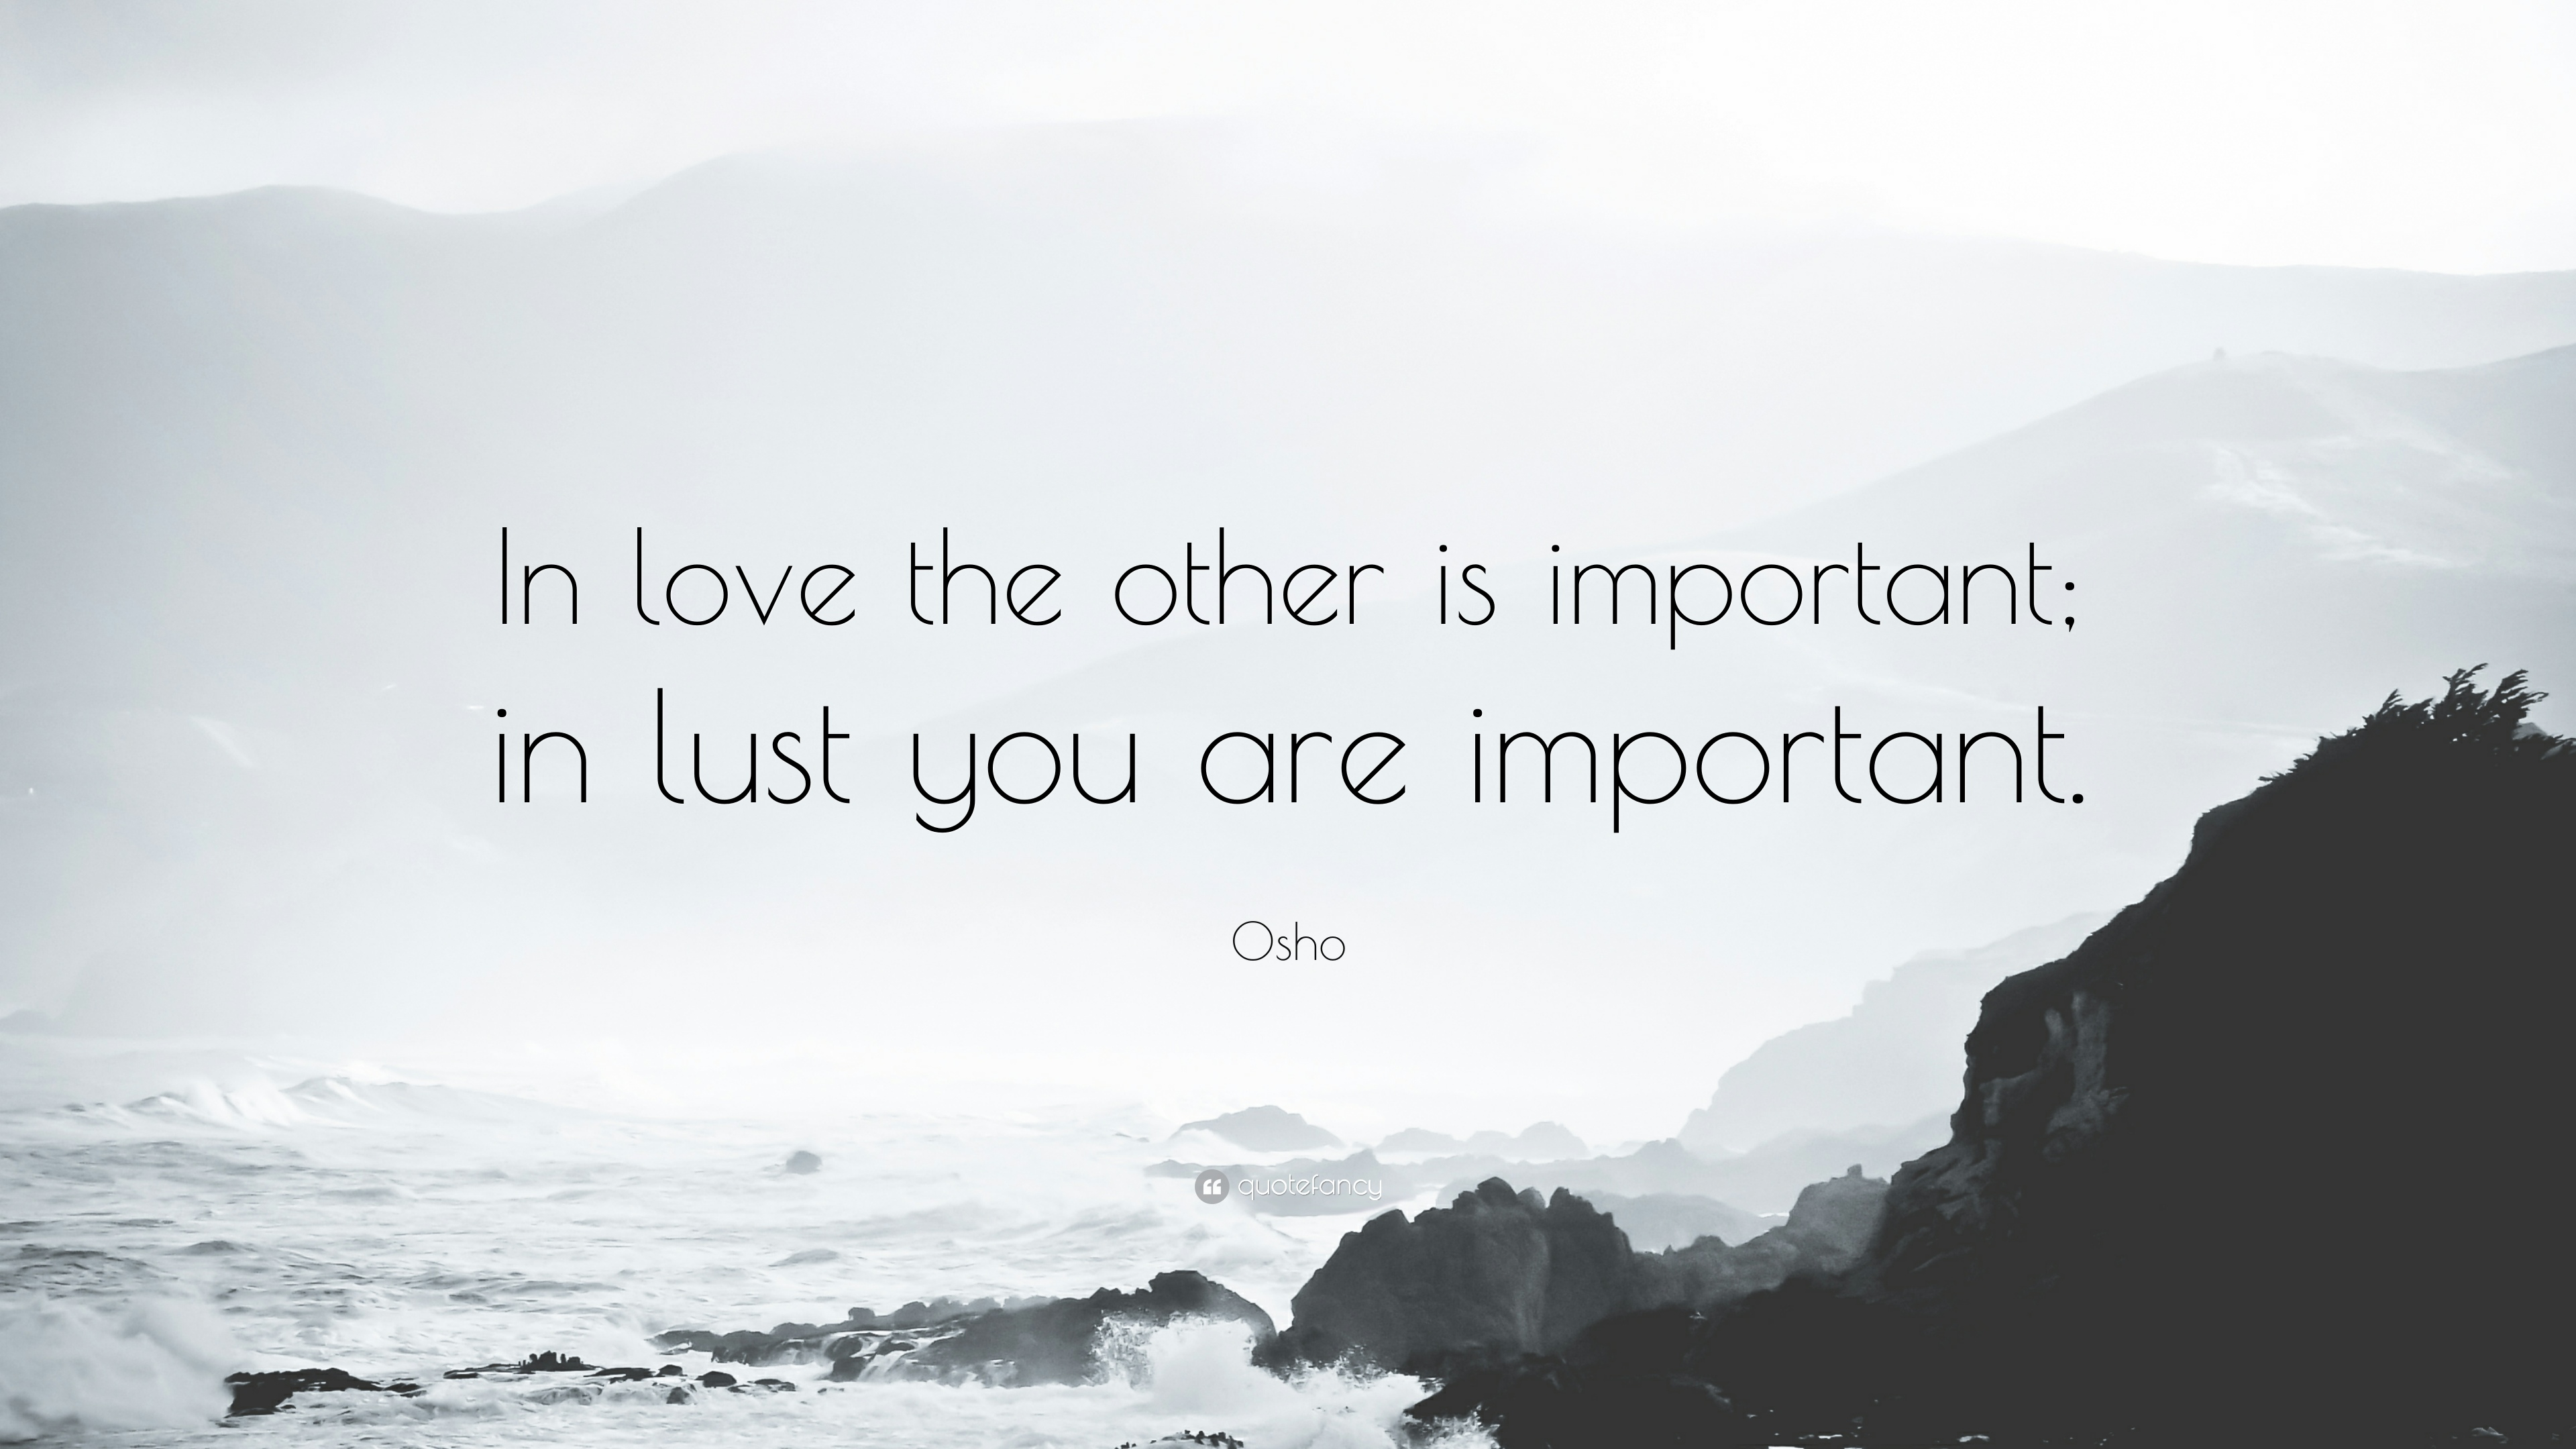 Love Quotes By Famous Poets Osho Quotes 41 Wallpapers  Quotefancy